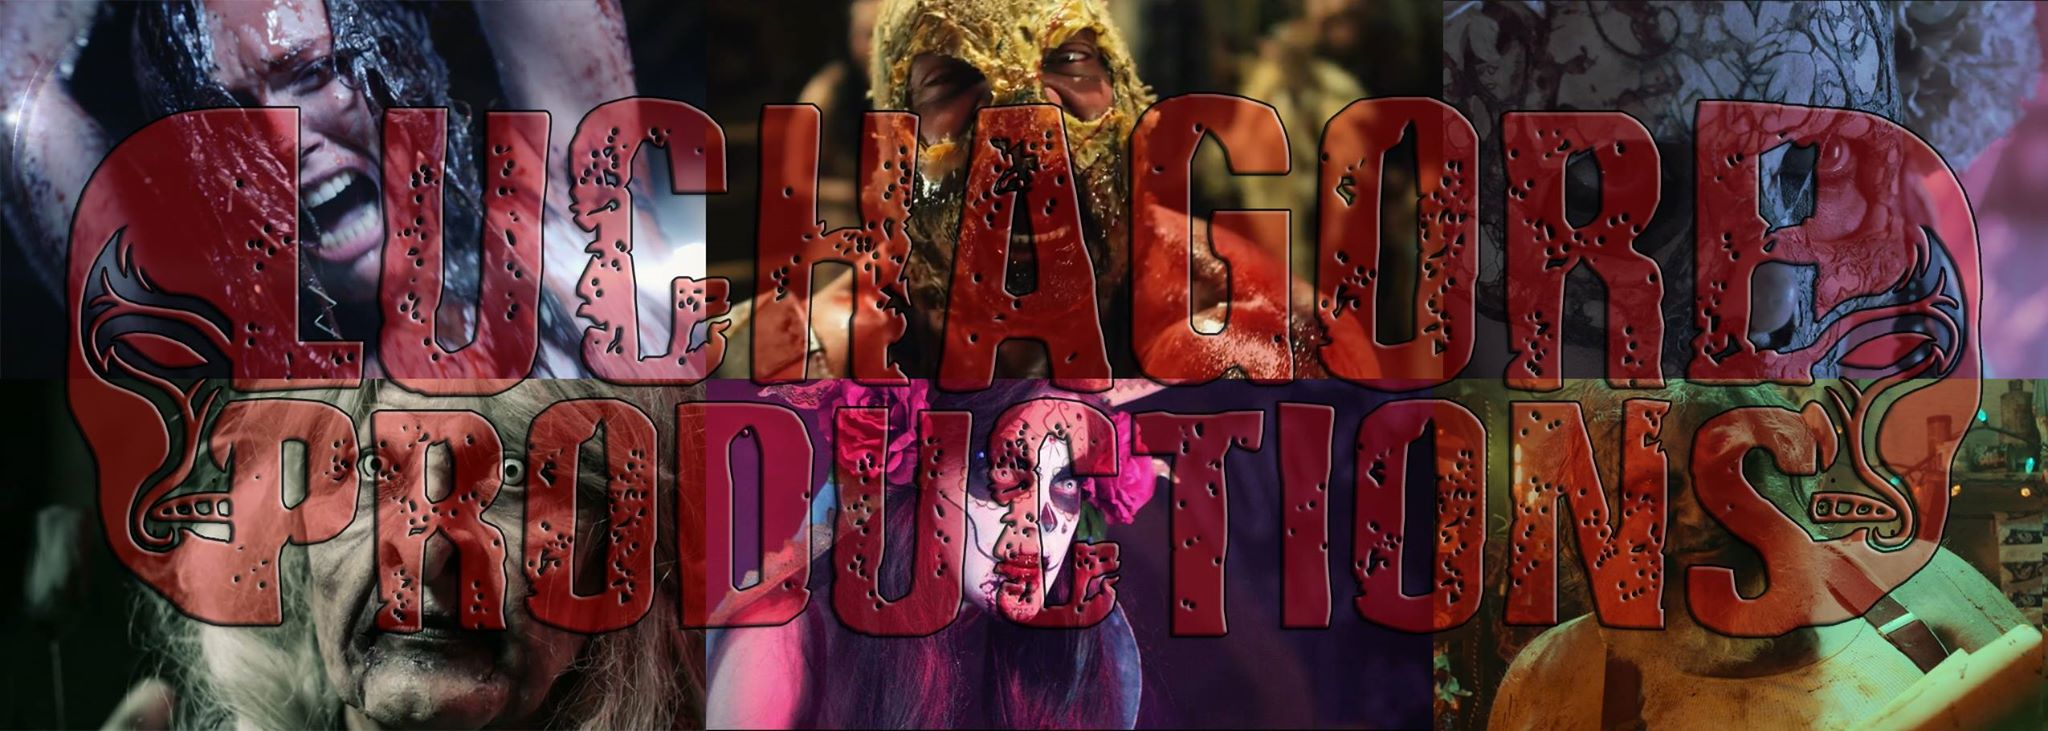 INTERVIEW: Gigi Saul Guerrero talks LUCHAGORE PRODUCTIONS